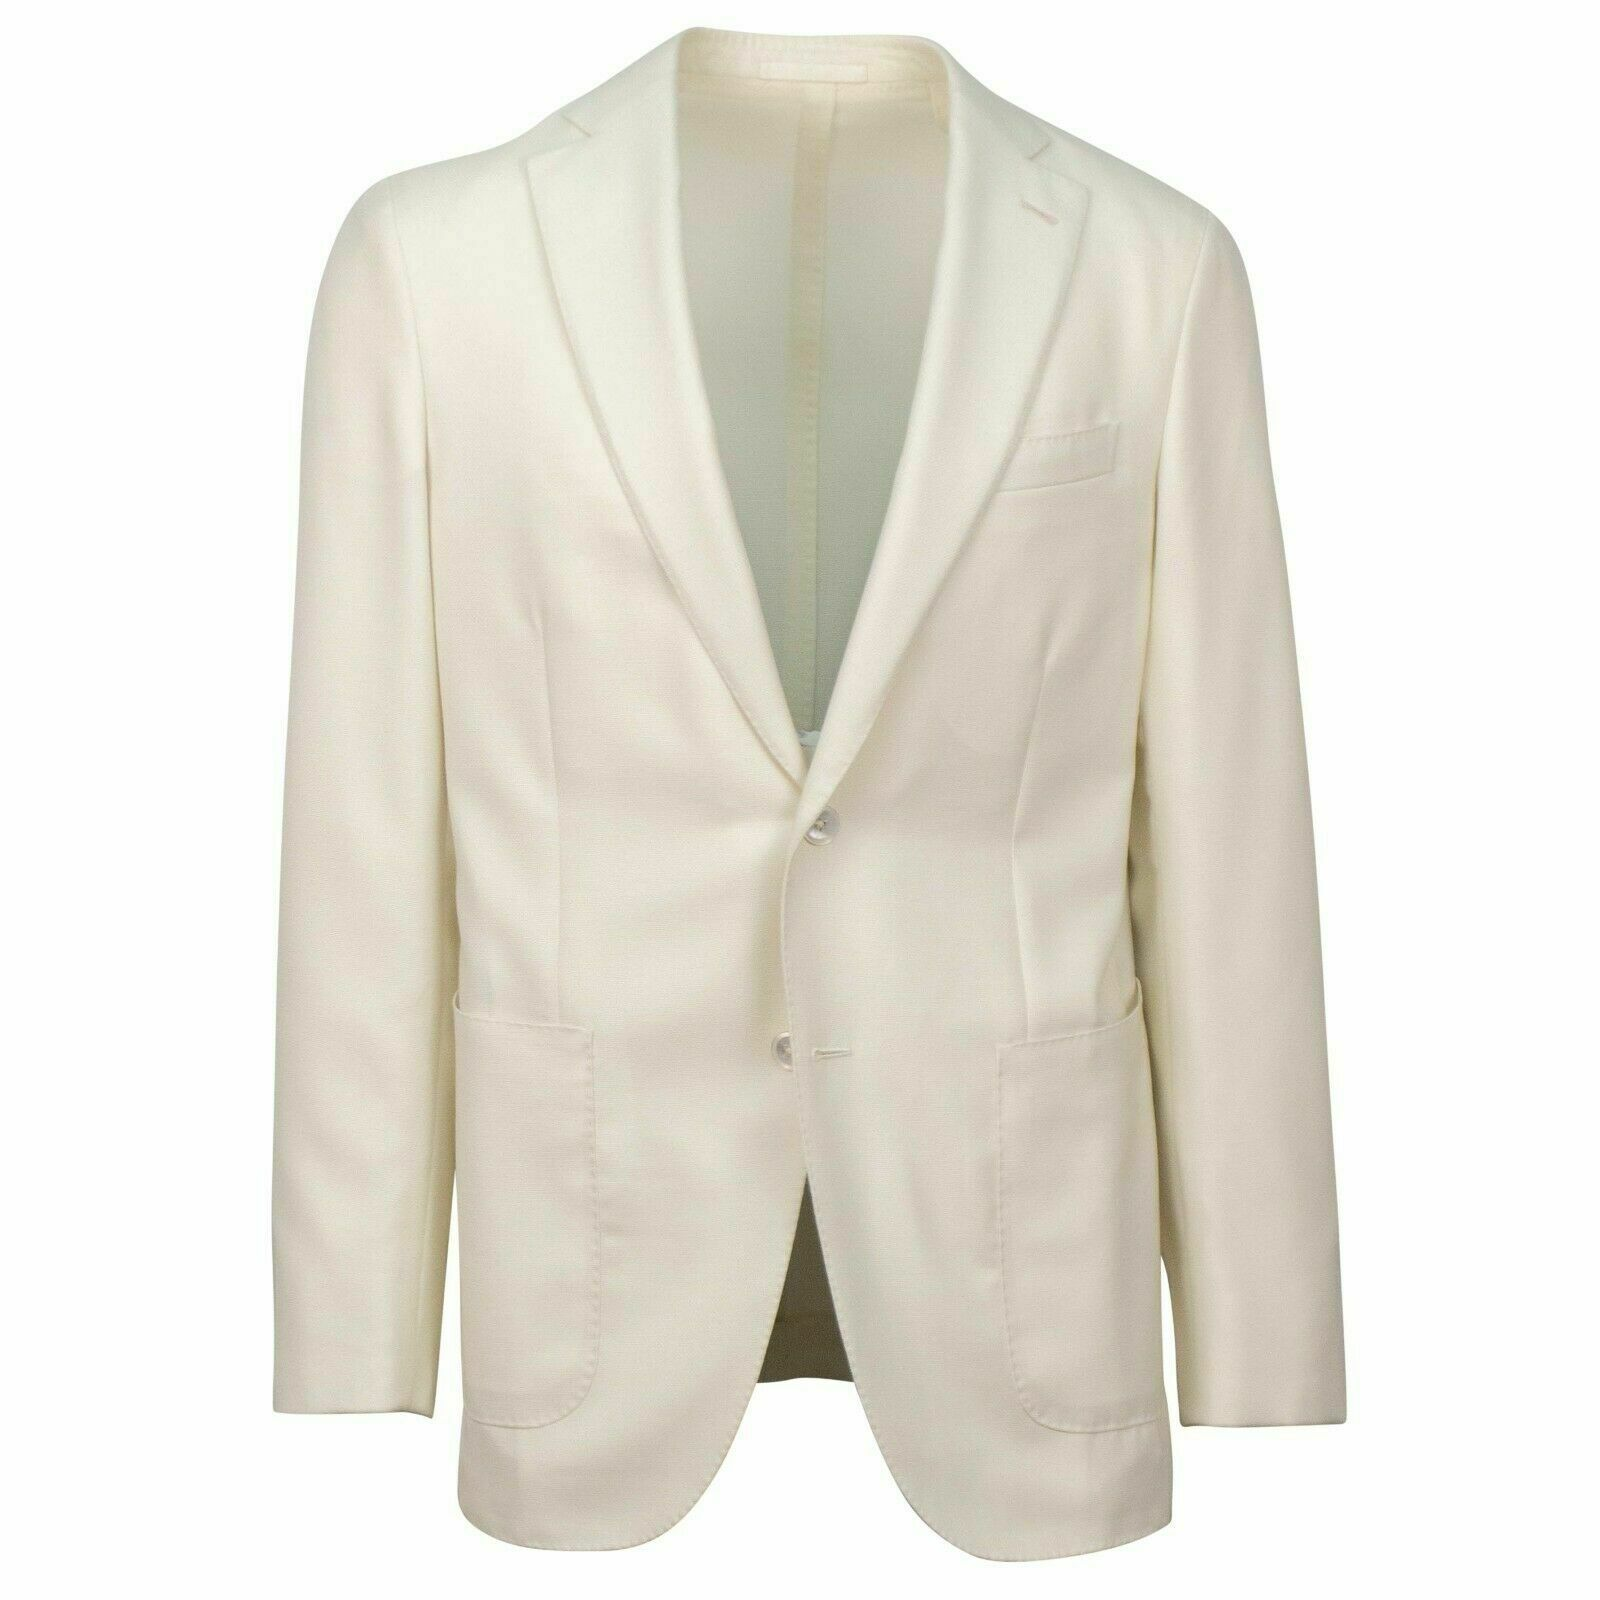 NWT CARUSO Ivory wolle2 Button Sport Coat 50 40 R Drop 8